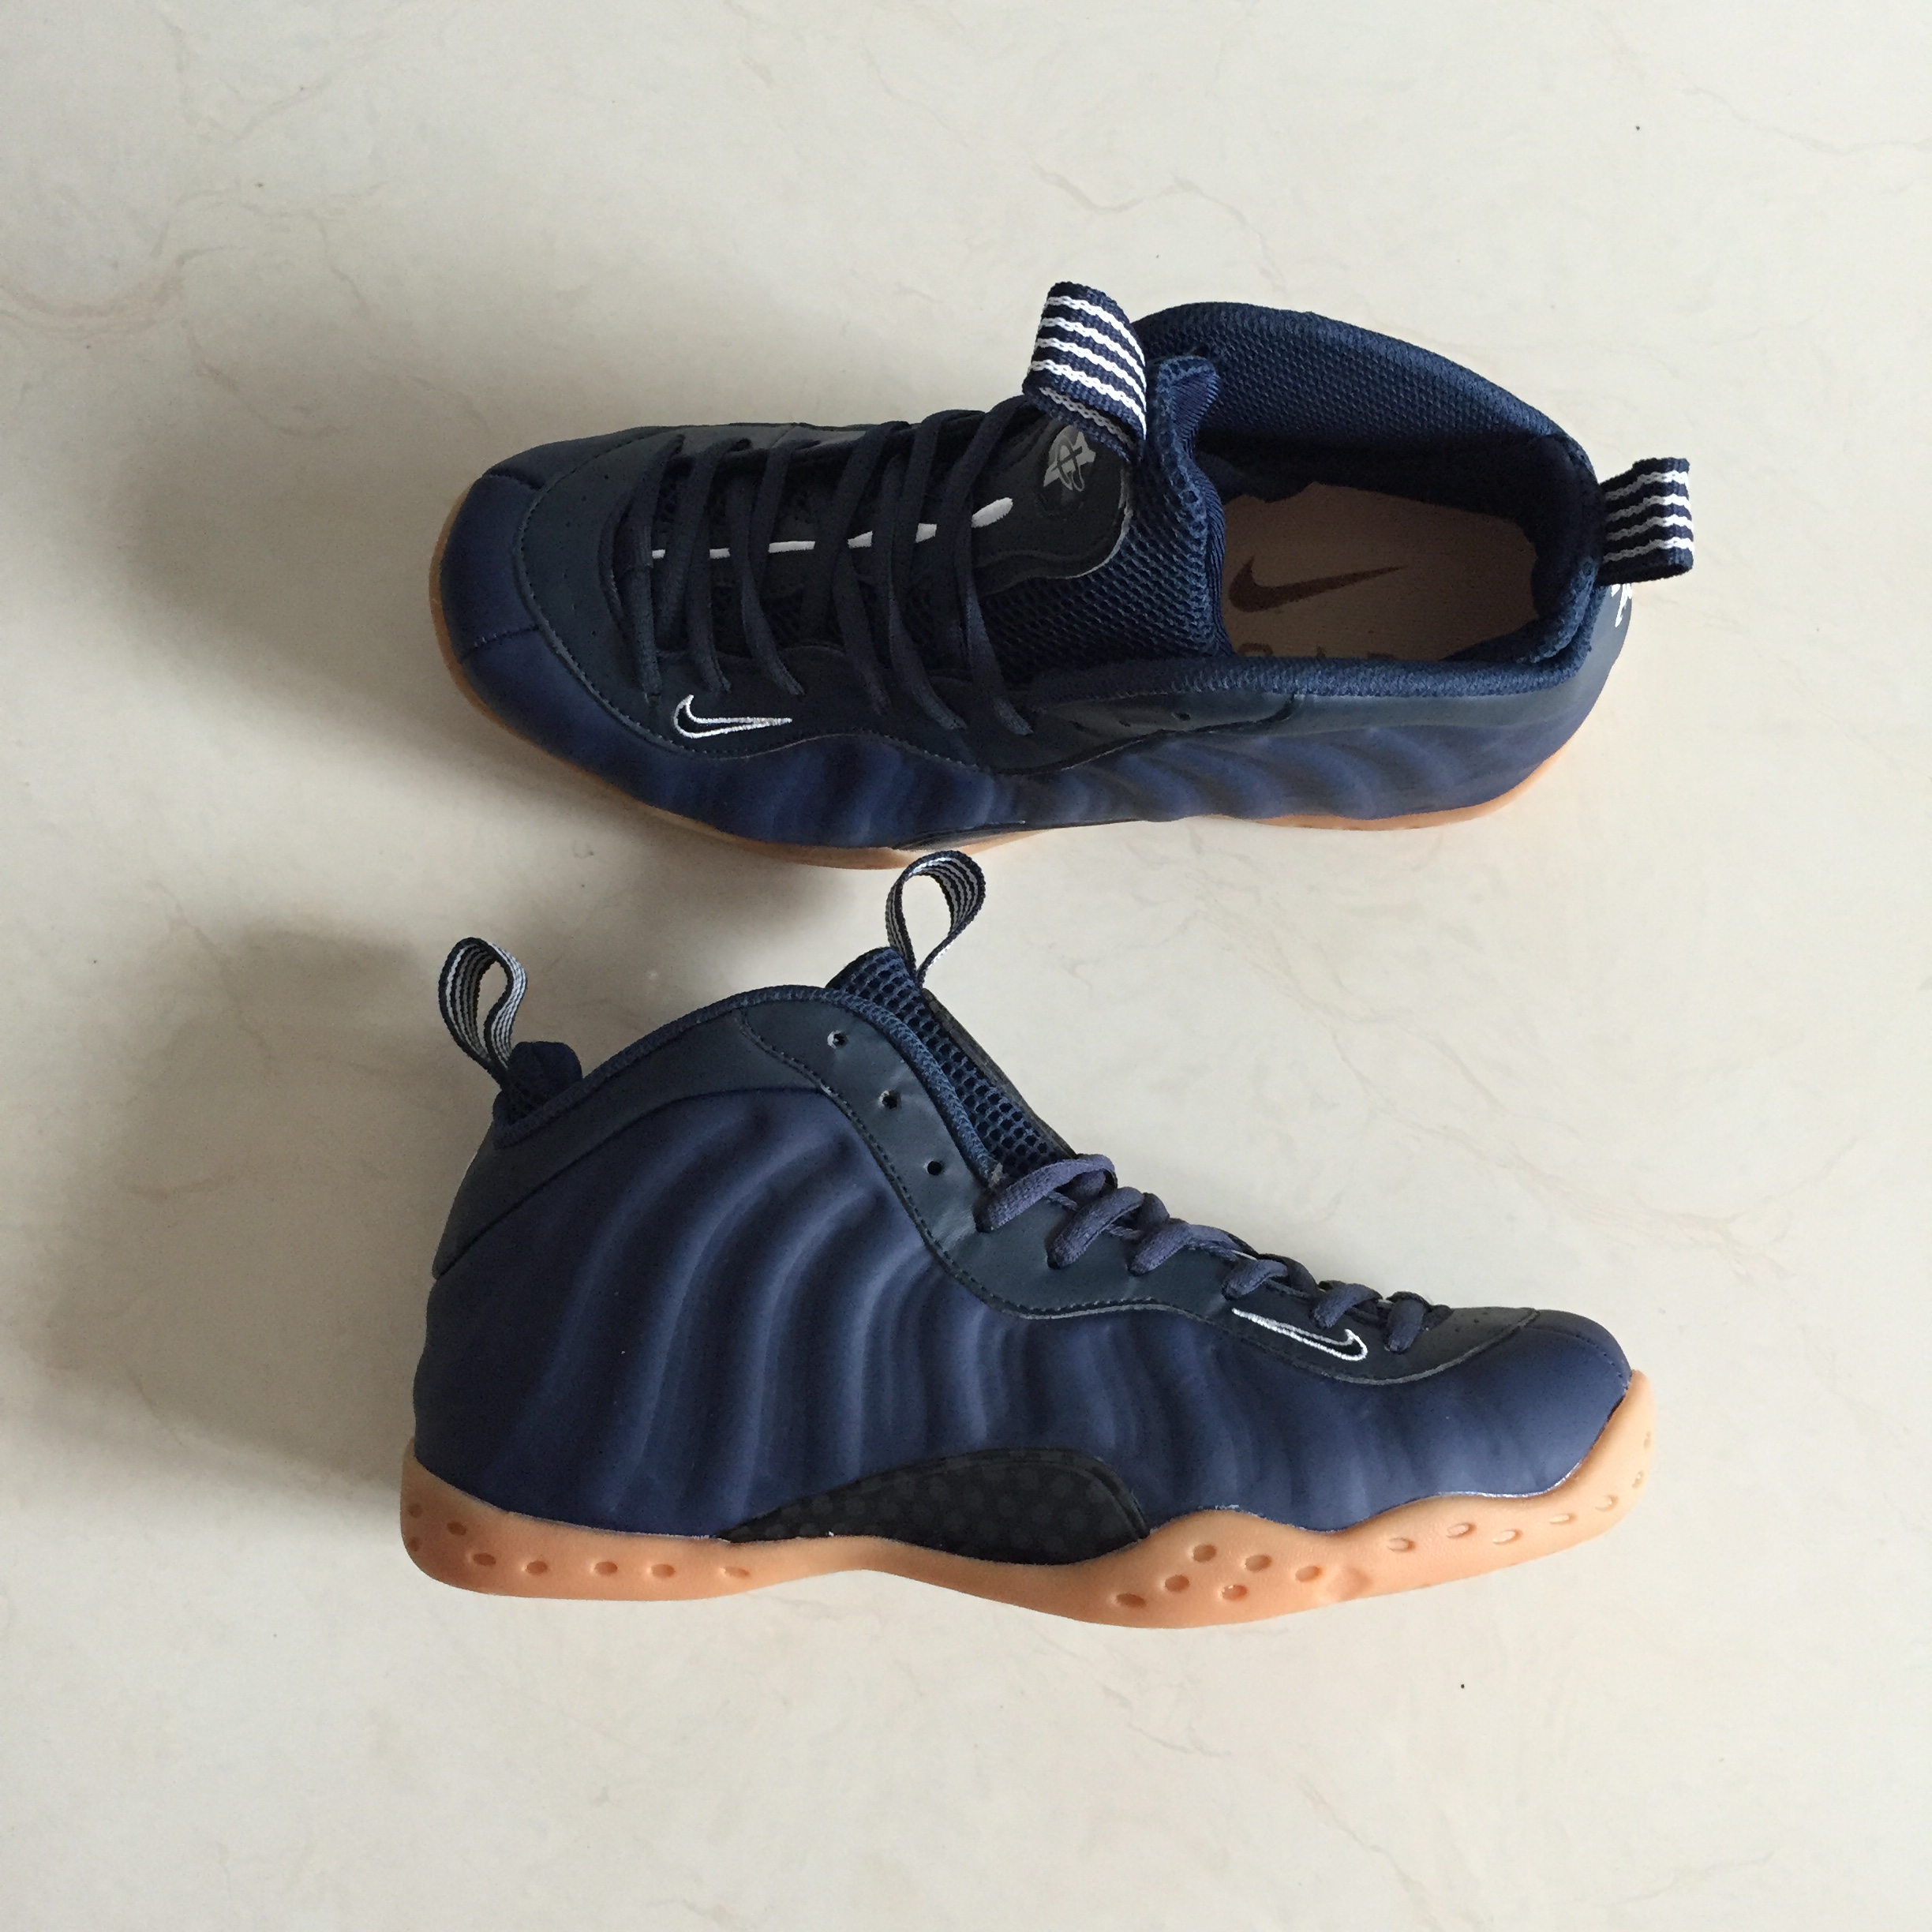 best cheap fe335 de3fc Air foamposites one Midnight Navy mens 2019 yeezy foamposite shoes SY2 -  Getfashionsstore.